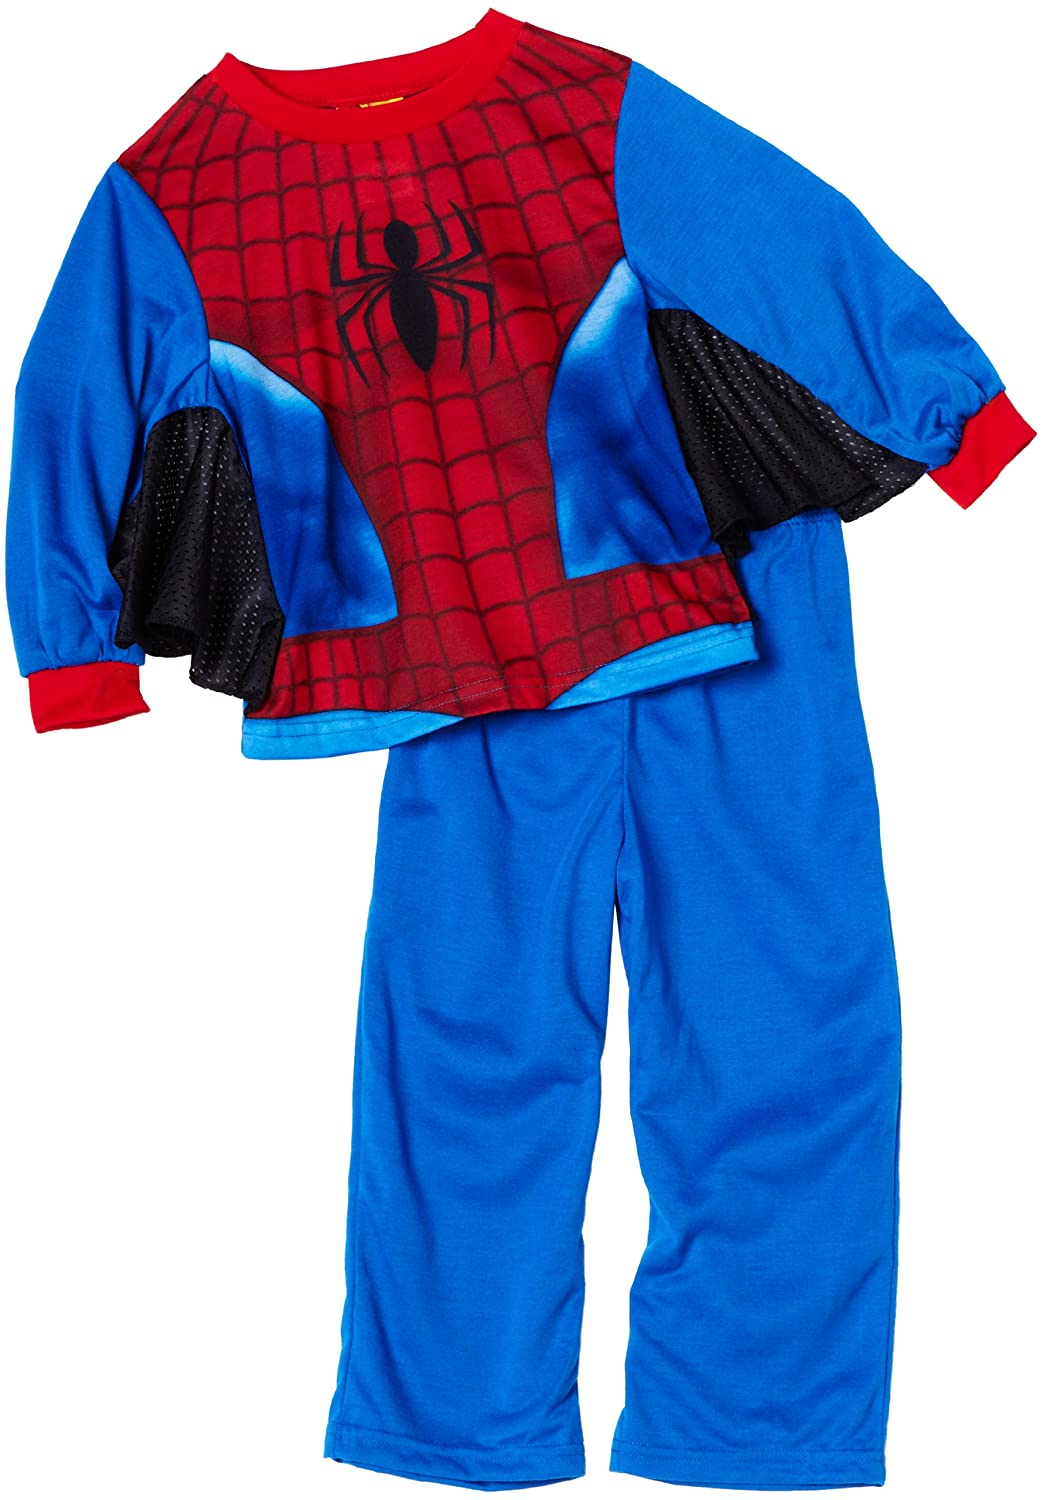 AME Sleepwear Little Boys Spider-Man Pajama Set Blue 2T AME Sleepwear Girls 2-6x 21SM033LLFPZA